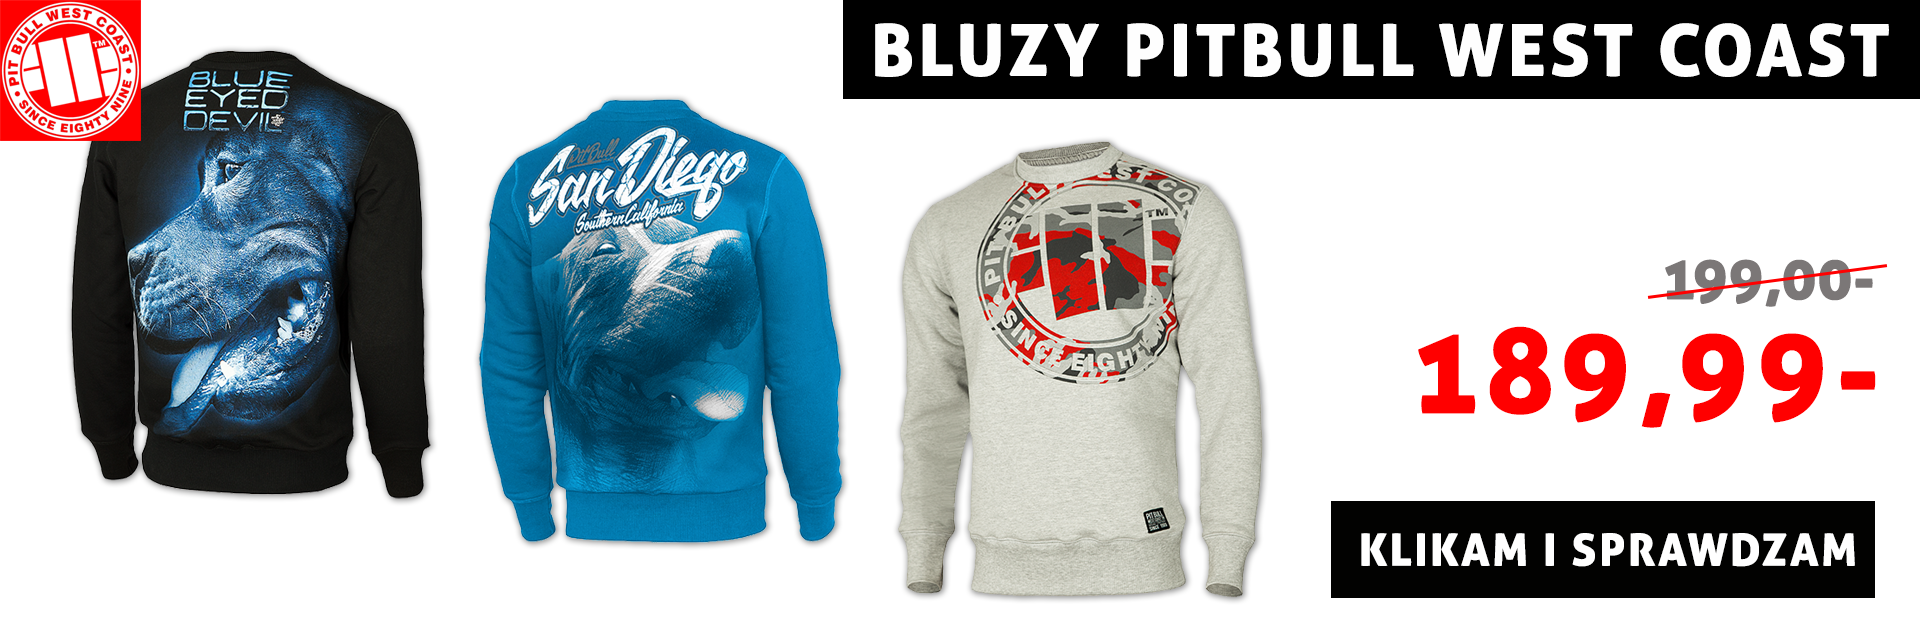 Bluzy Pitbull West Coast